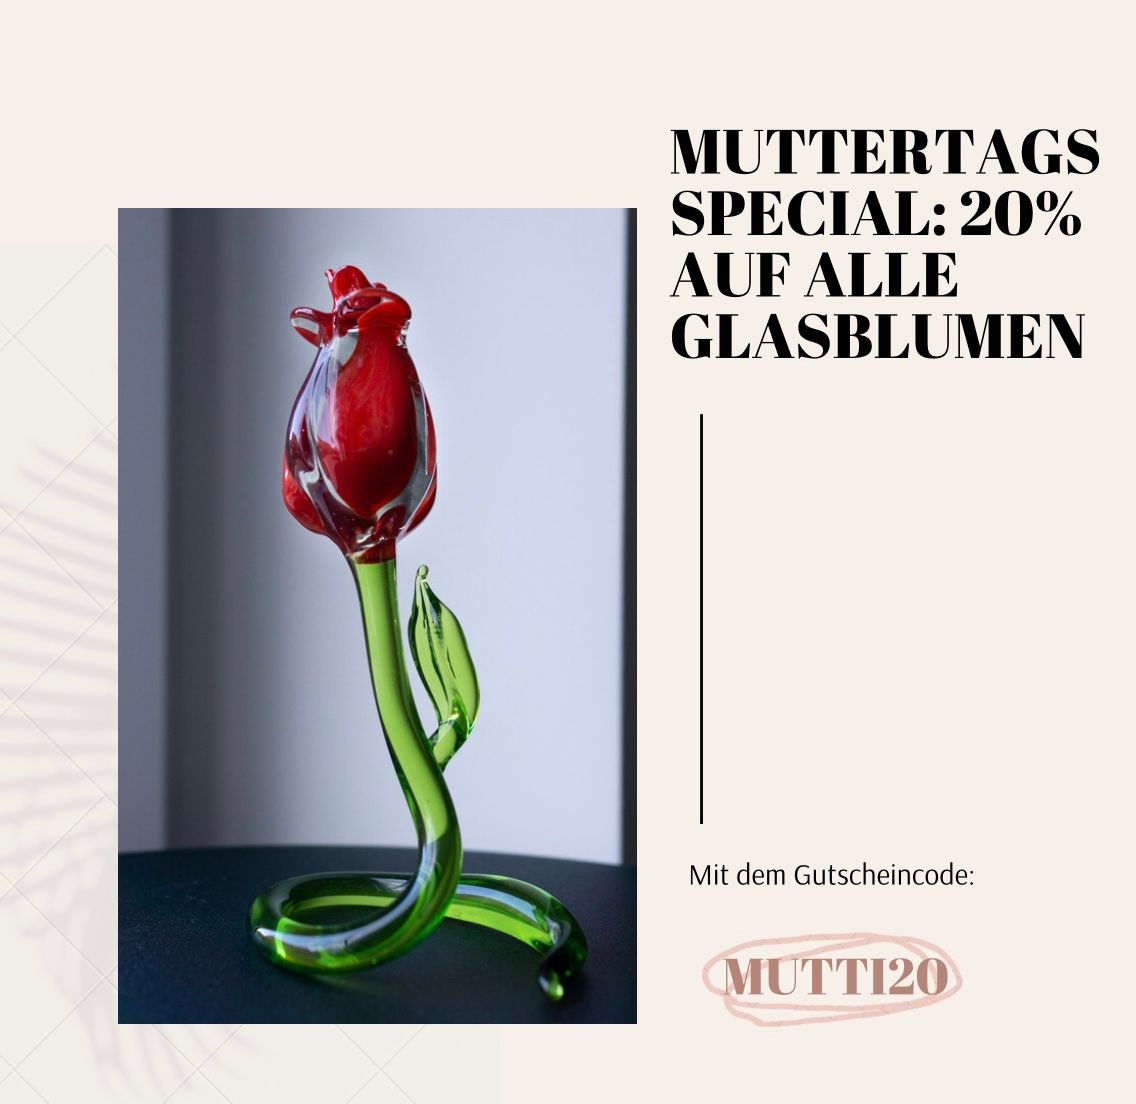 Rose aus Glas, Muttertags Special